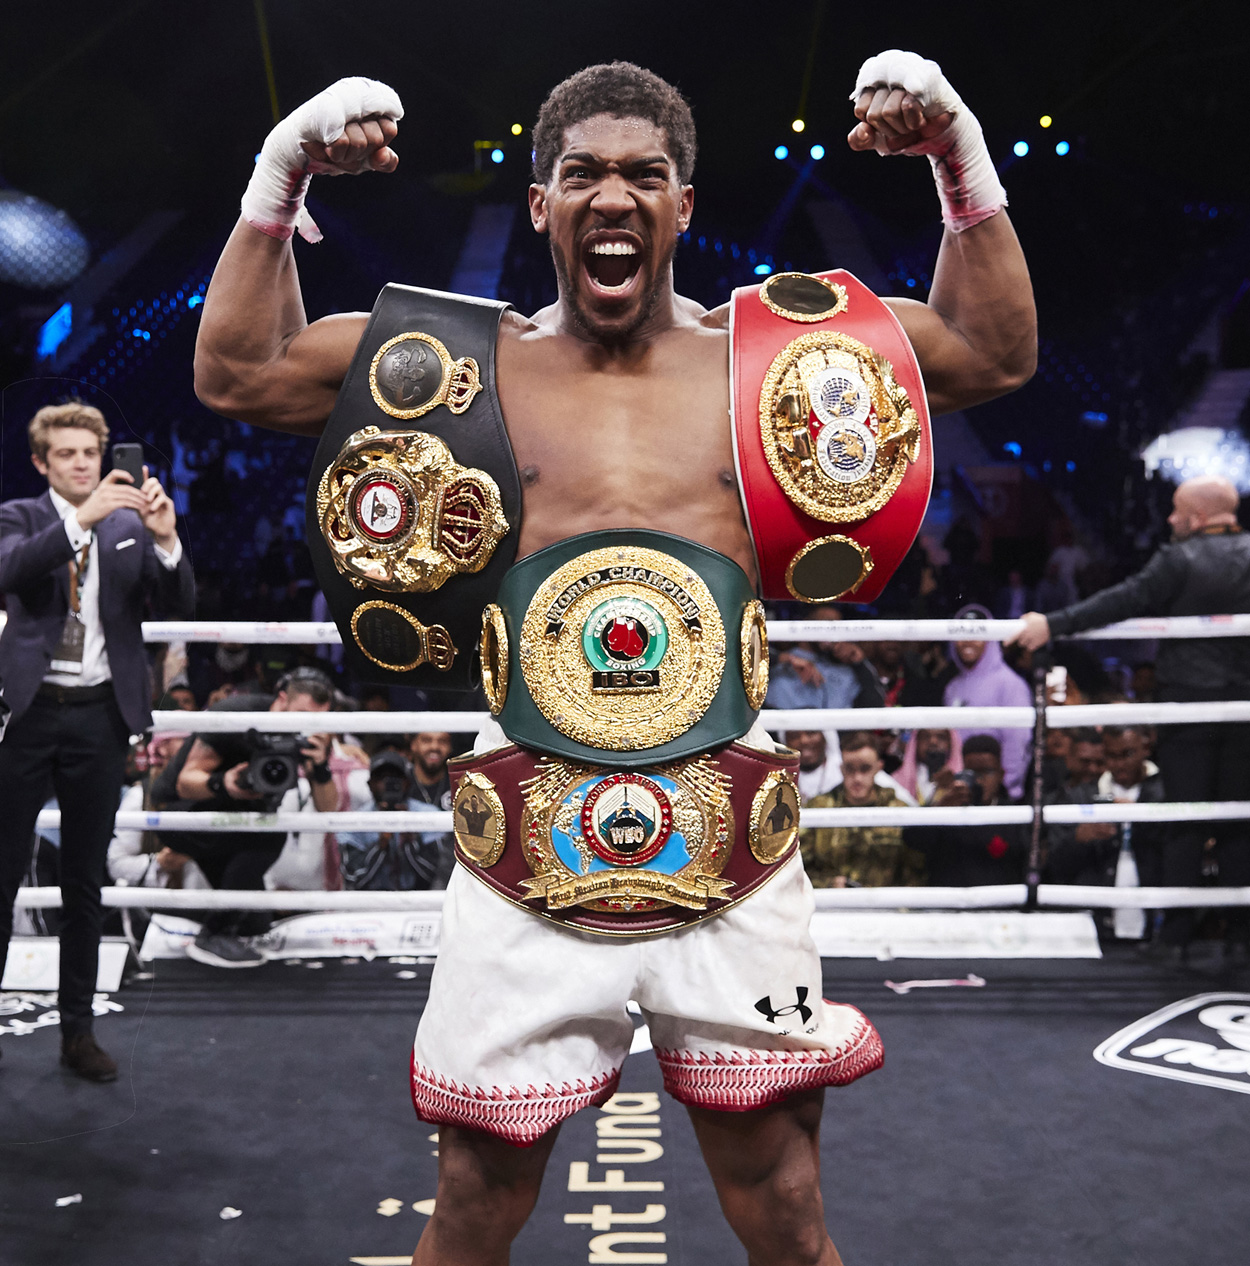 Anthony Joshua All The Belts Roar Saudi Arabia Rematch Andy Ruiz Jr © Mark Robinson Photographer Matchrrom Boxing 2019.